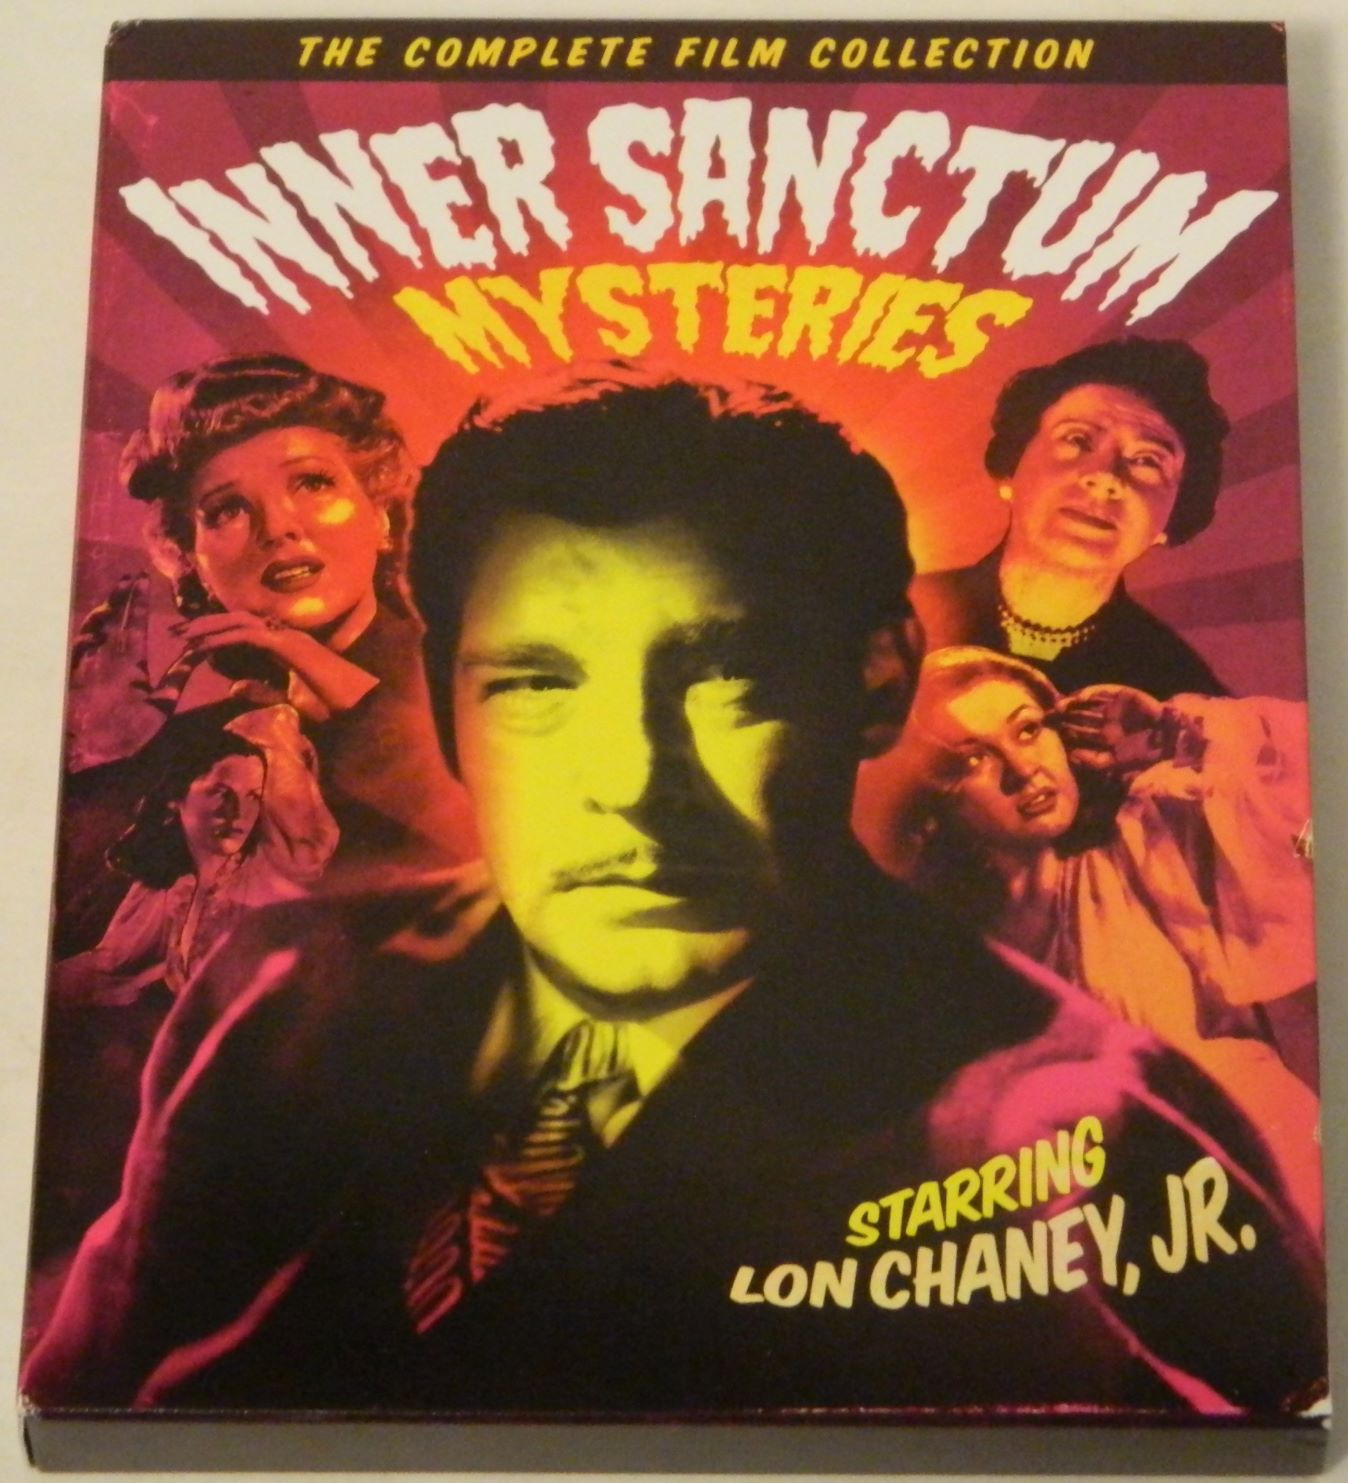 Inner Sanctum Mysteries The Complete Film Collection Blu-ray